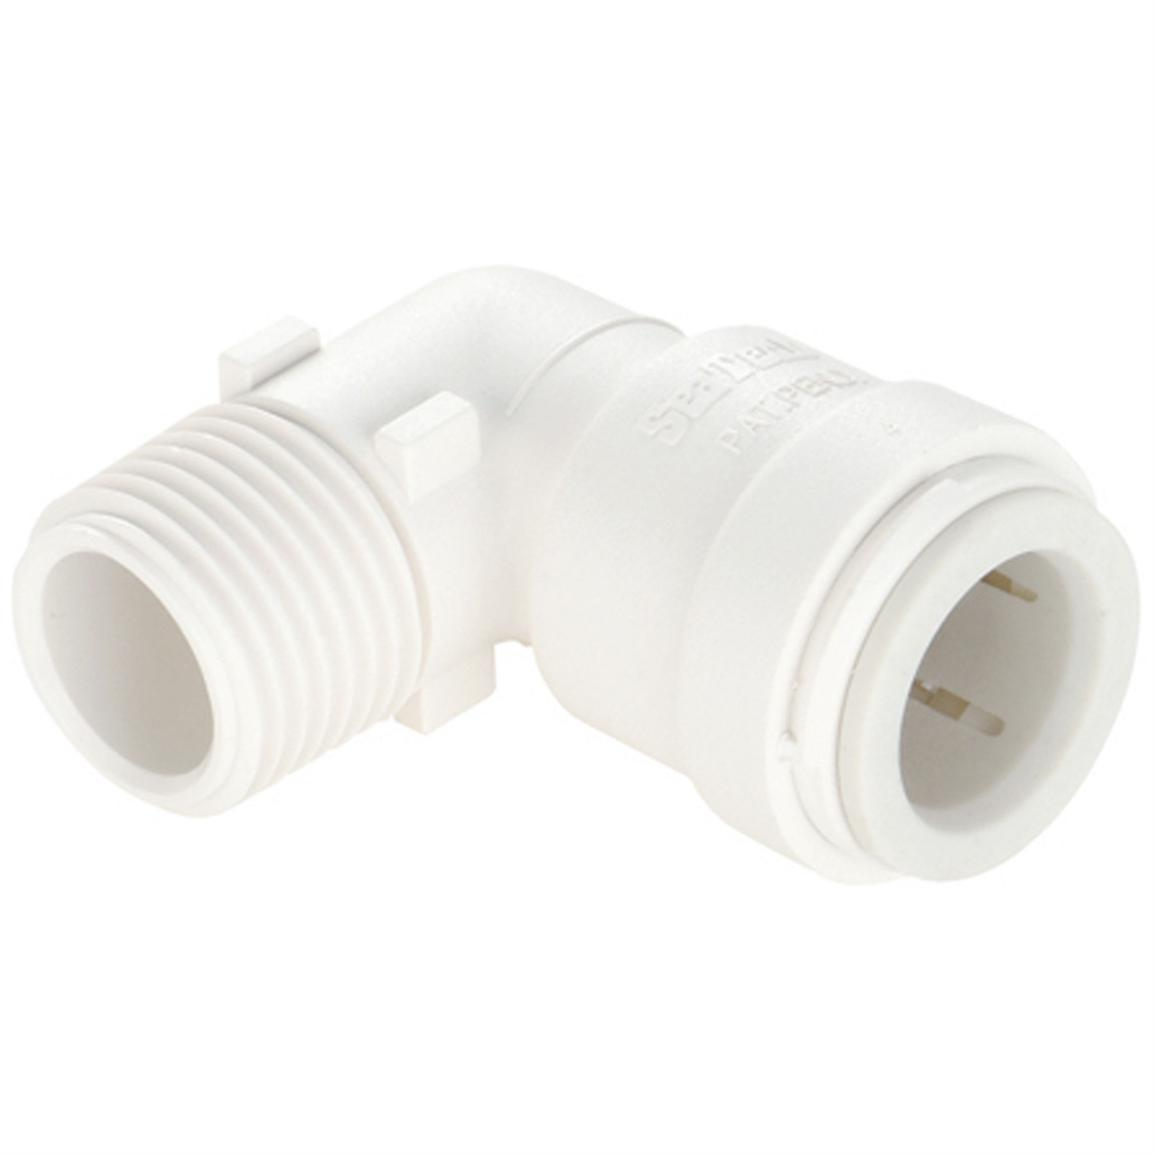 "Sea Tech® Male Elbow Connector, 1/2"" CTS to 1/2"" NPT"